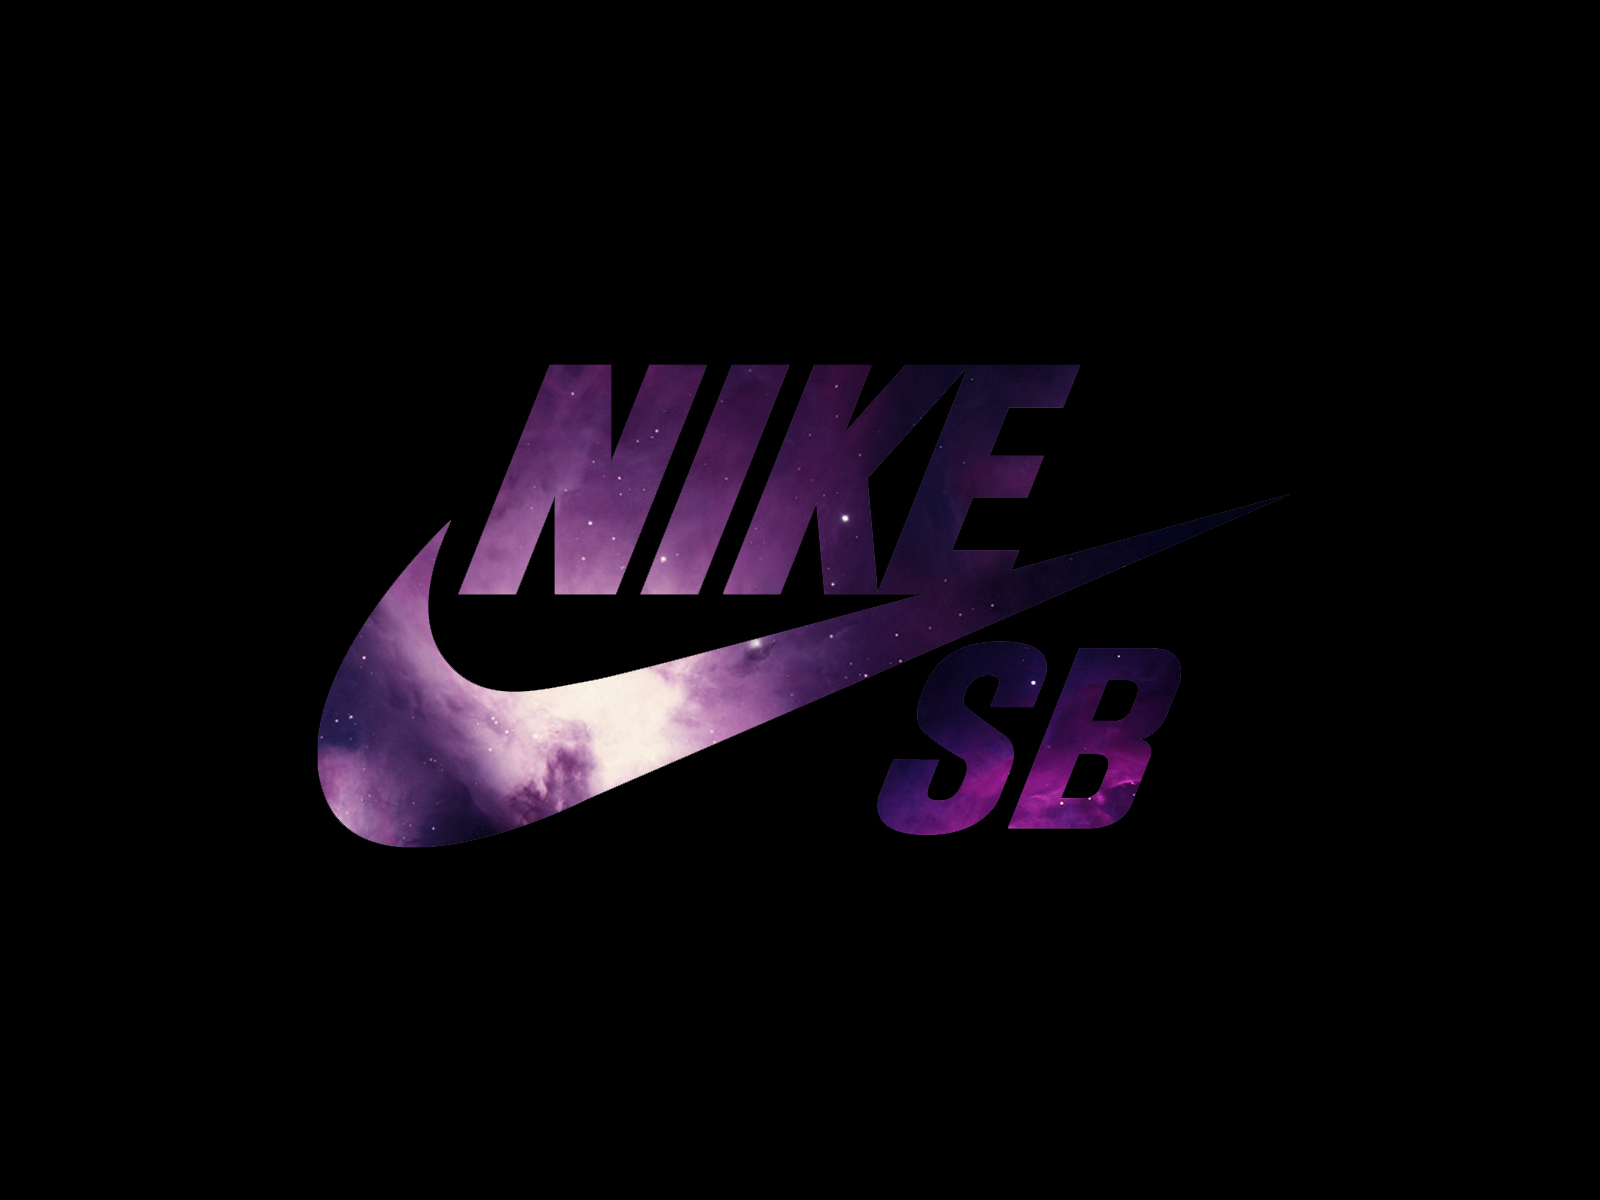 http://2.bp.blogspot.com/-Wc6TVDOrYy4/TnCtmNEqgVI/AAAAAAAAAko/xTVrtBJK4Cw/s1600/nike_SB_Wallpaper_desktop_background_logo2_quality.jpg